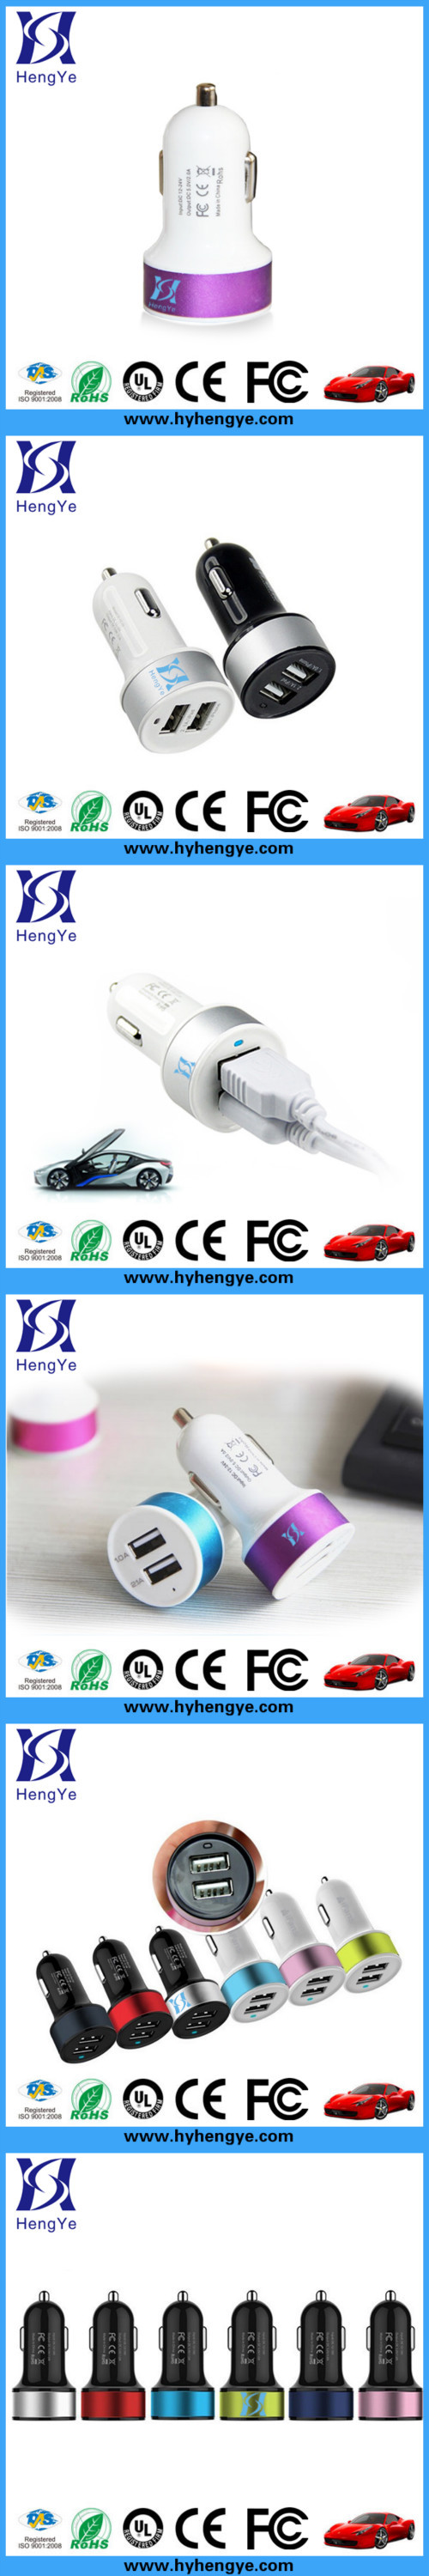 medium resolution of wireless rechargeable mobile phone battery charger mobile charger box mobile phone charger circuit diagram